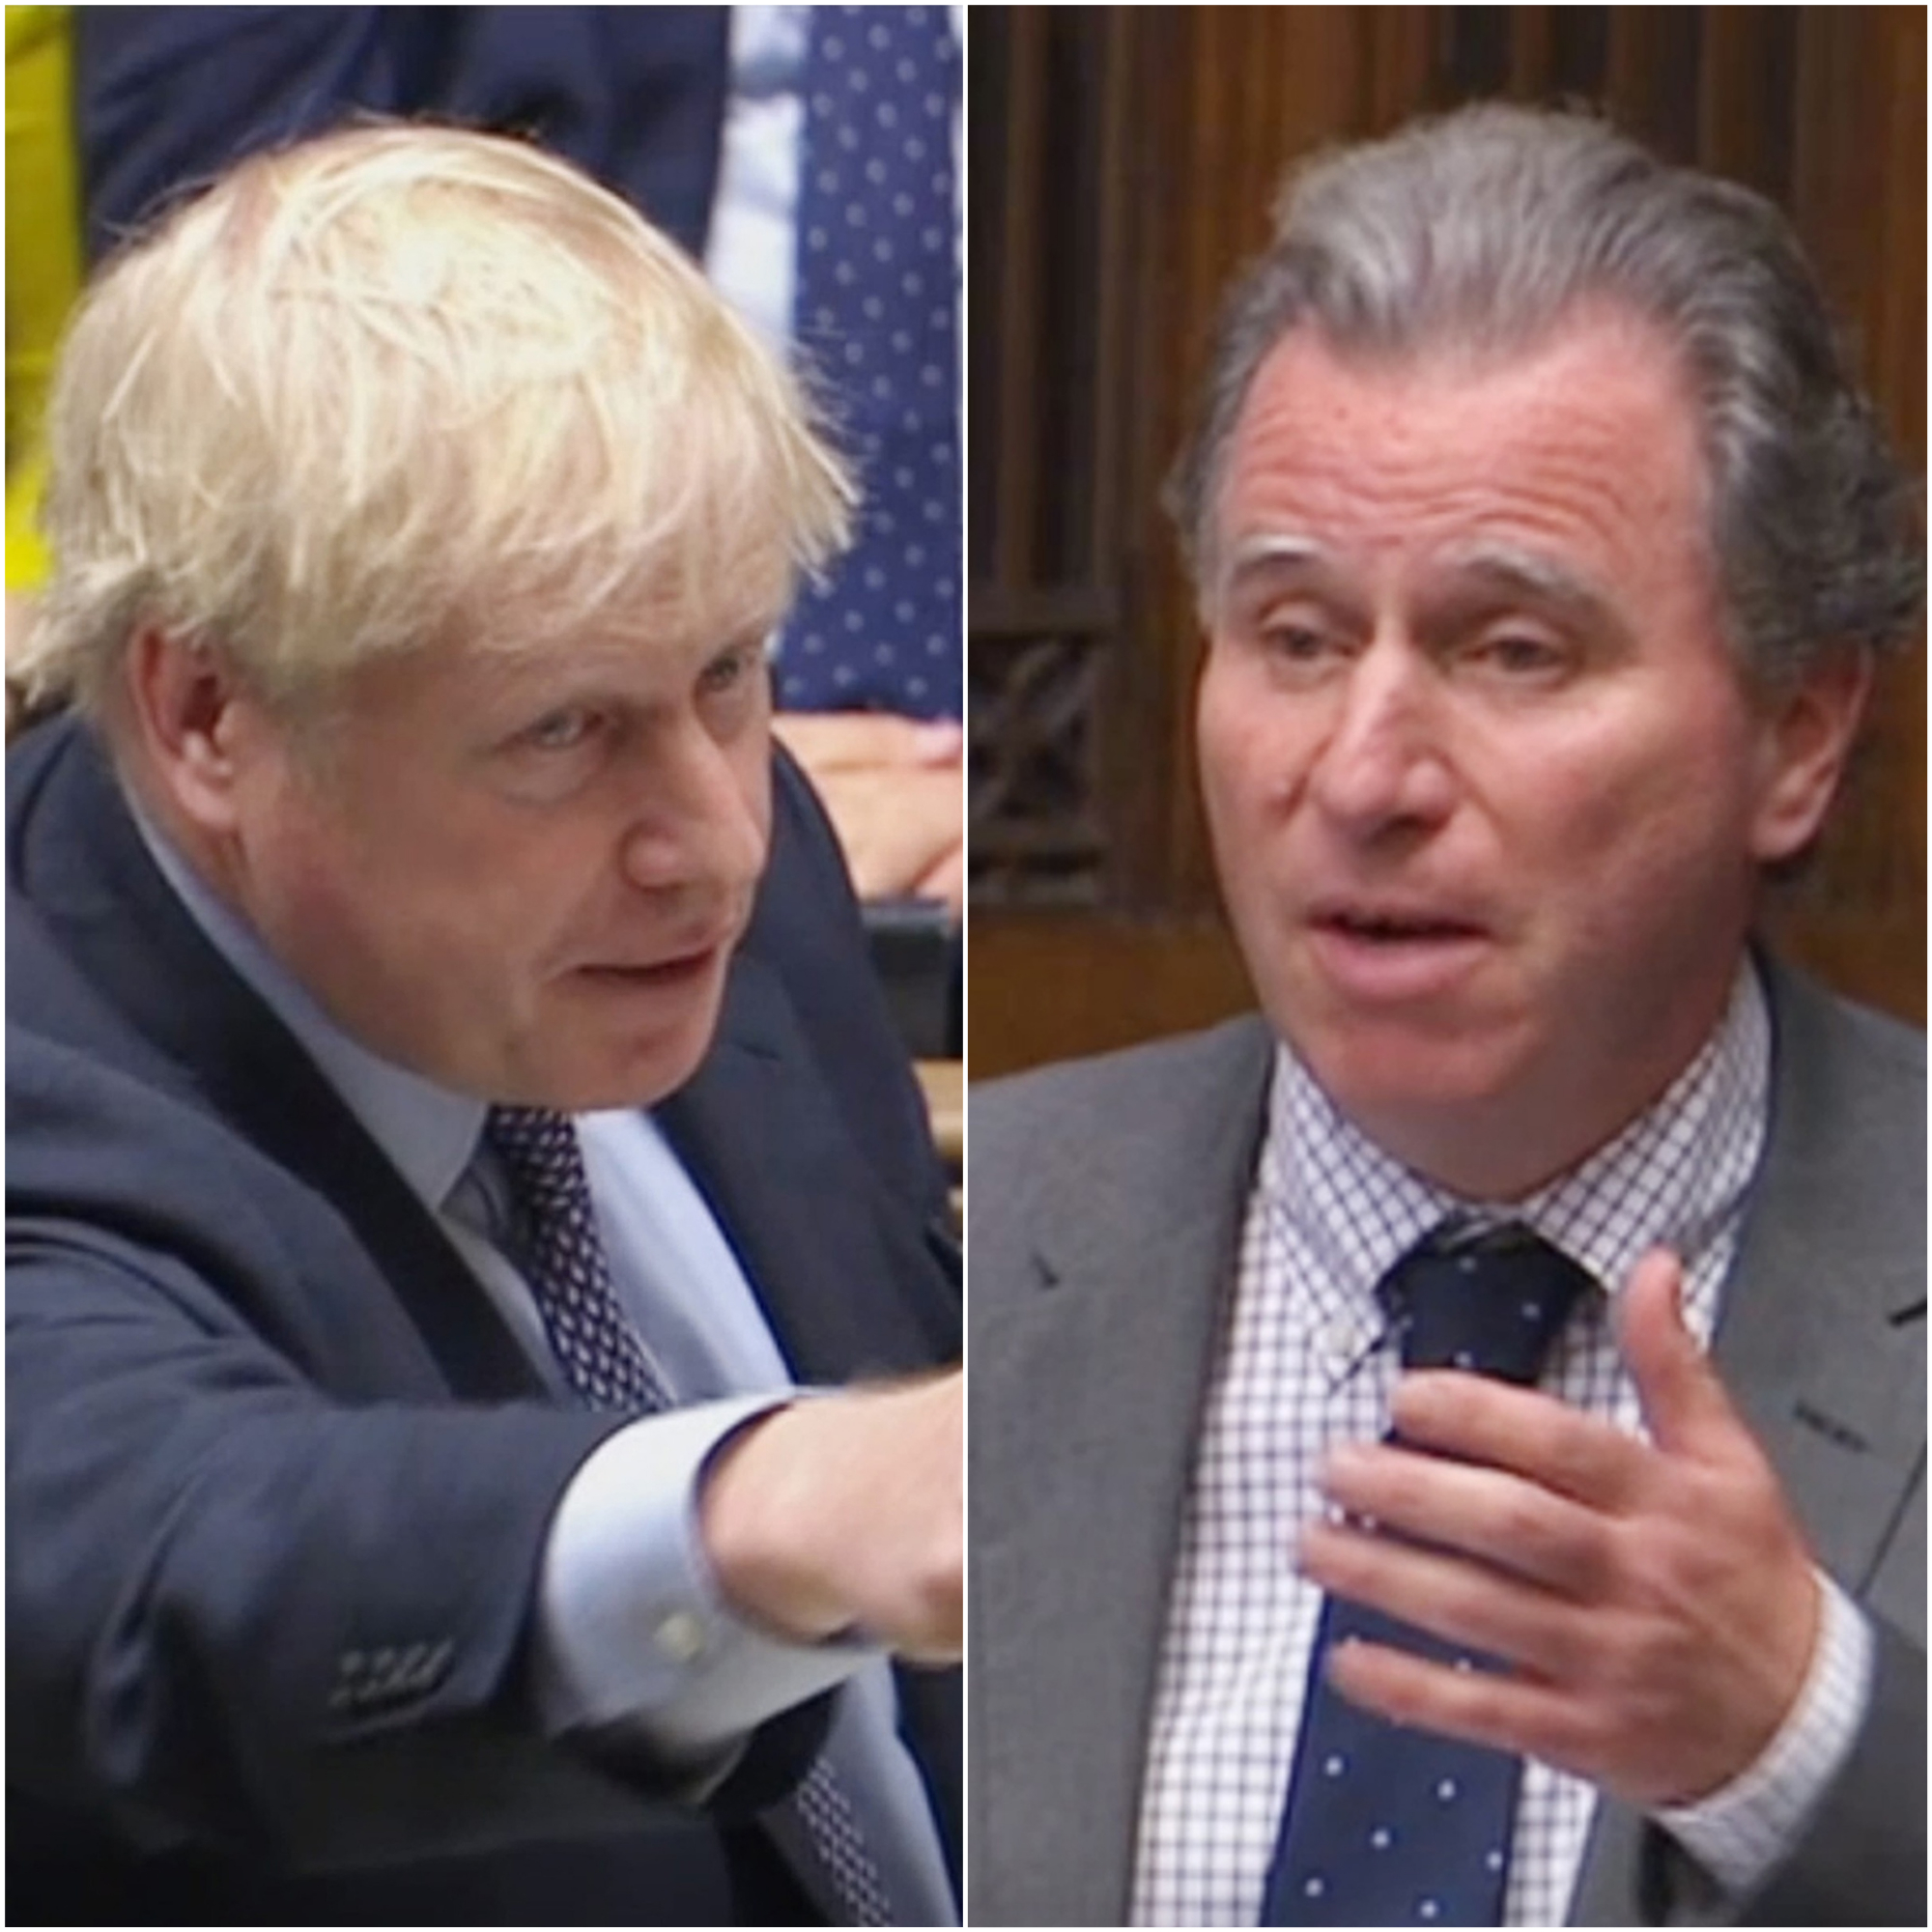 Sir Oliver Letwin (right) passed his amendment on Boris Johnson's deal (House of Commons/PA)